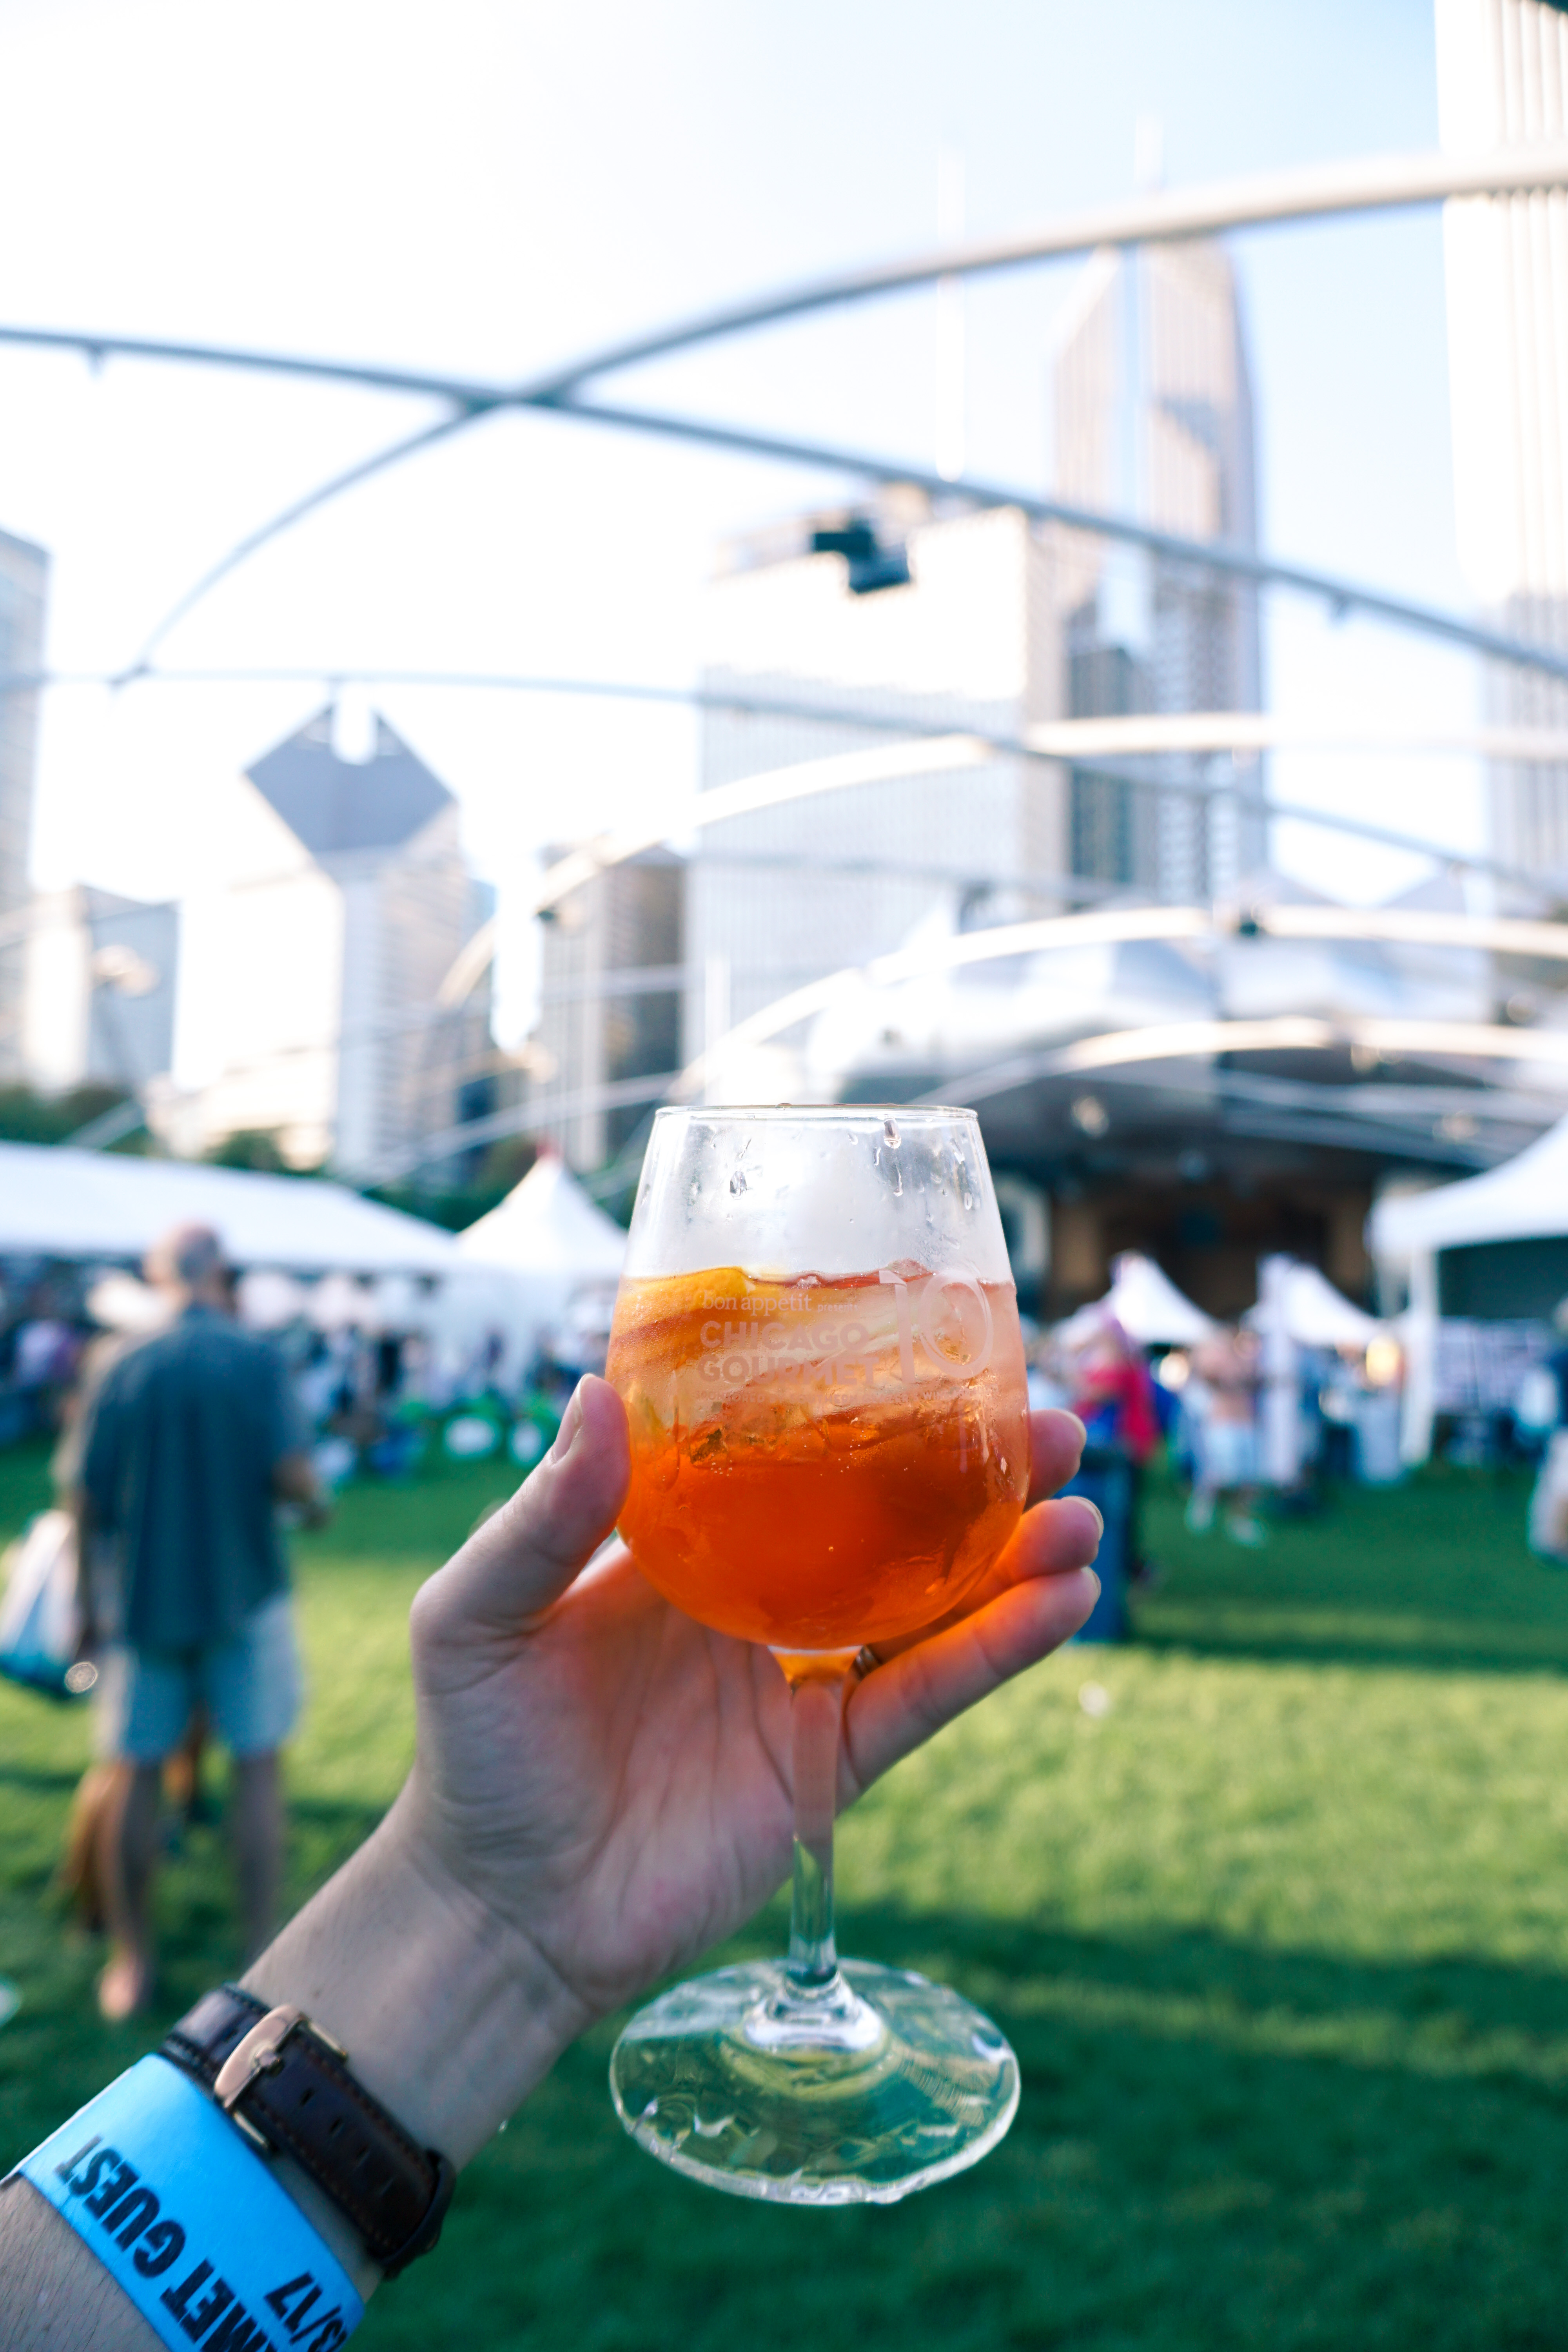 Aperol Spritz Chicago Gourmet 2017 via 312food